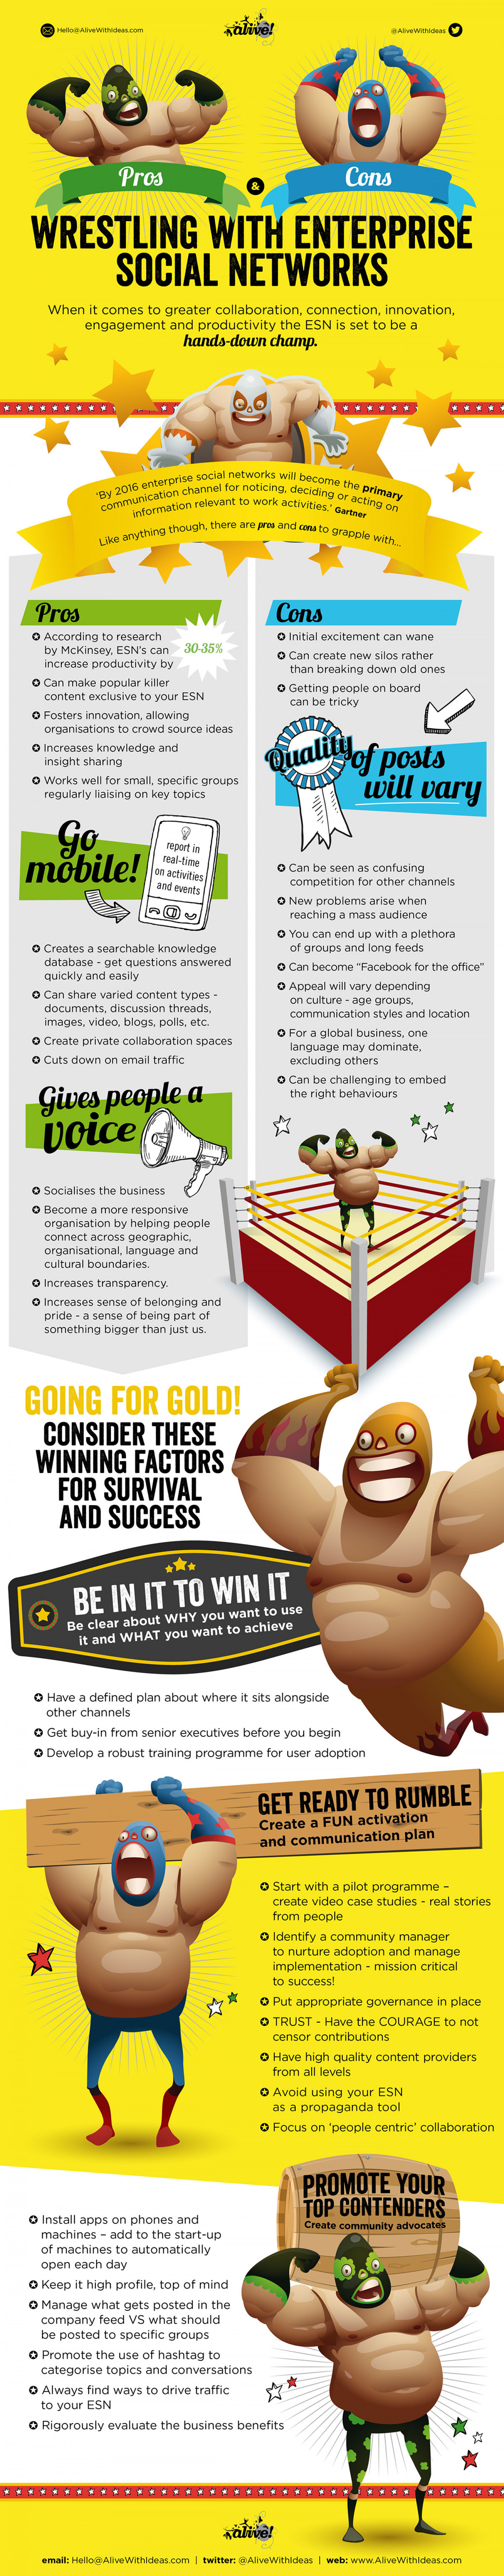 Wrestling With Internal Social Media Infographic